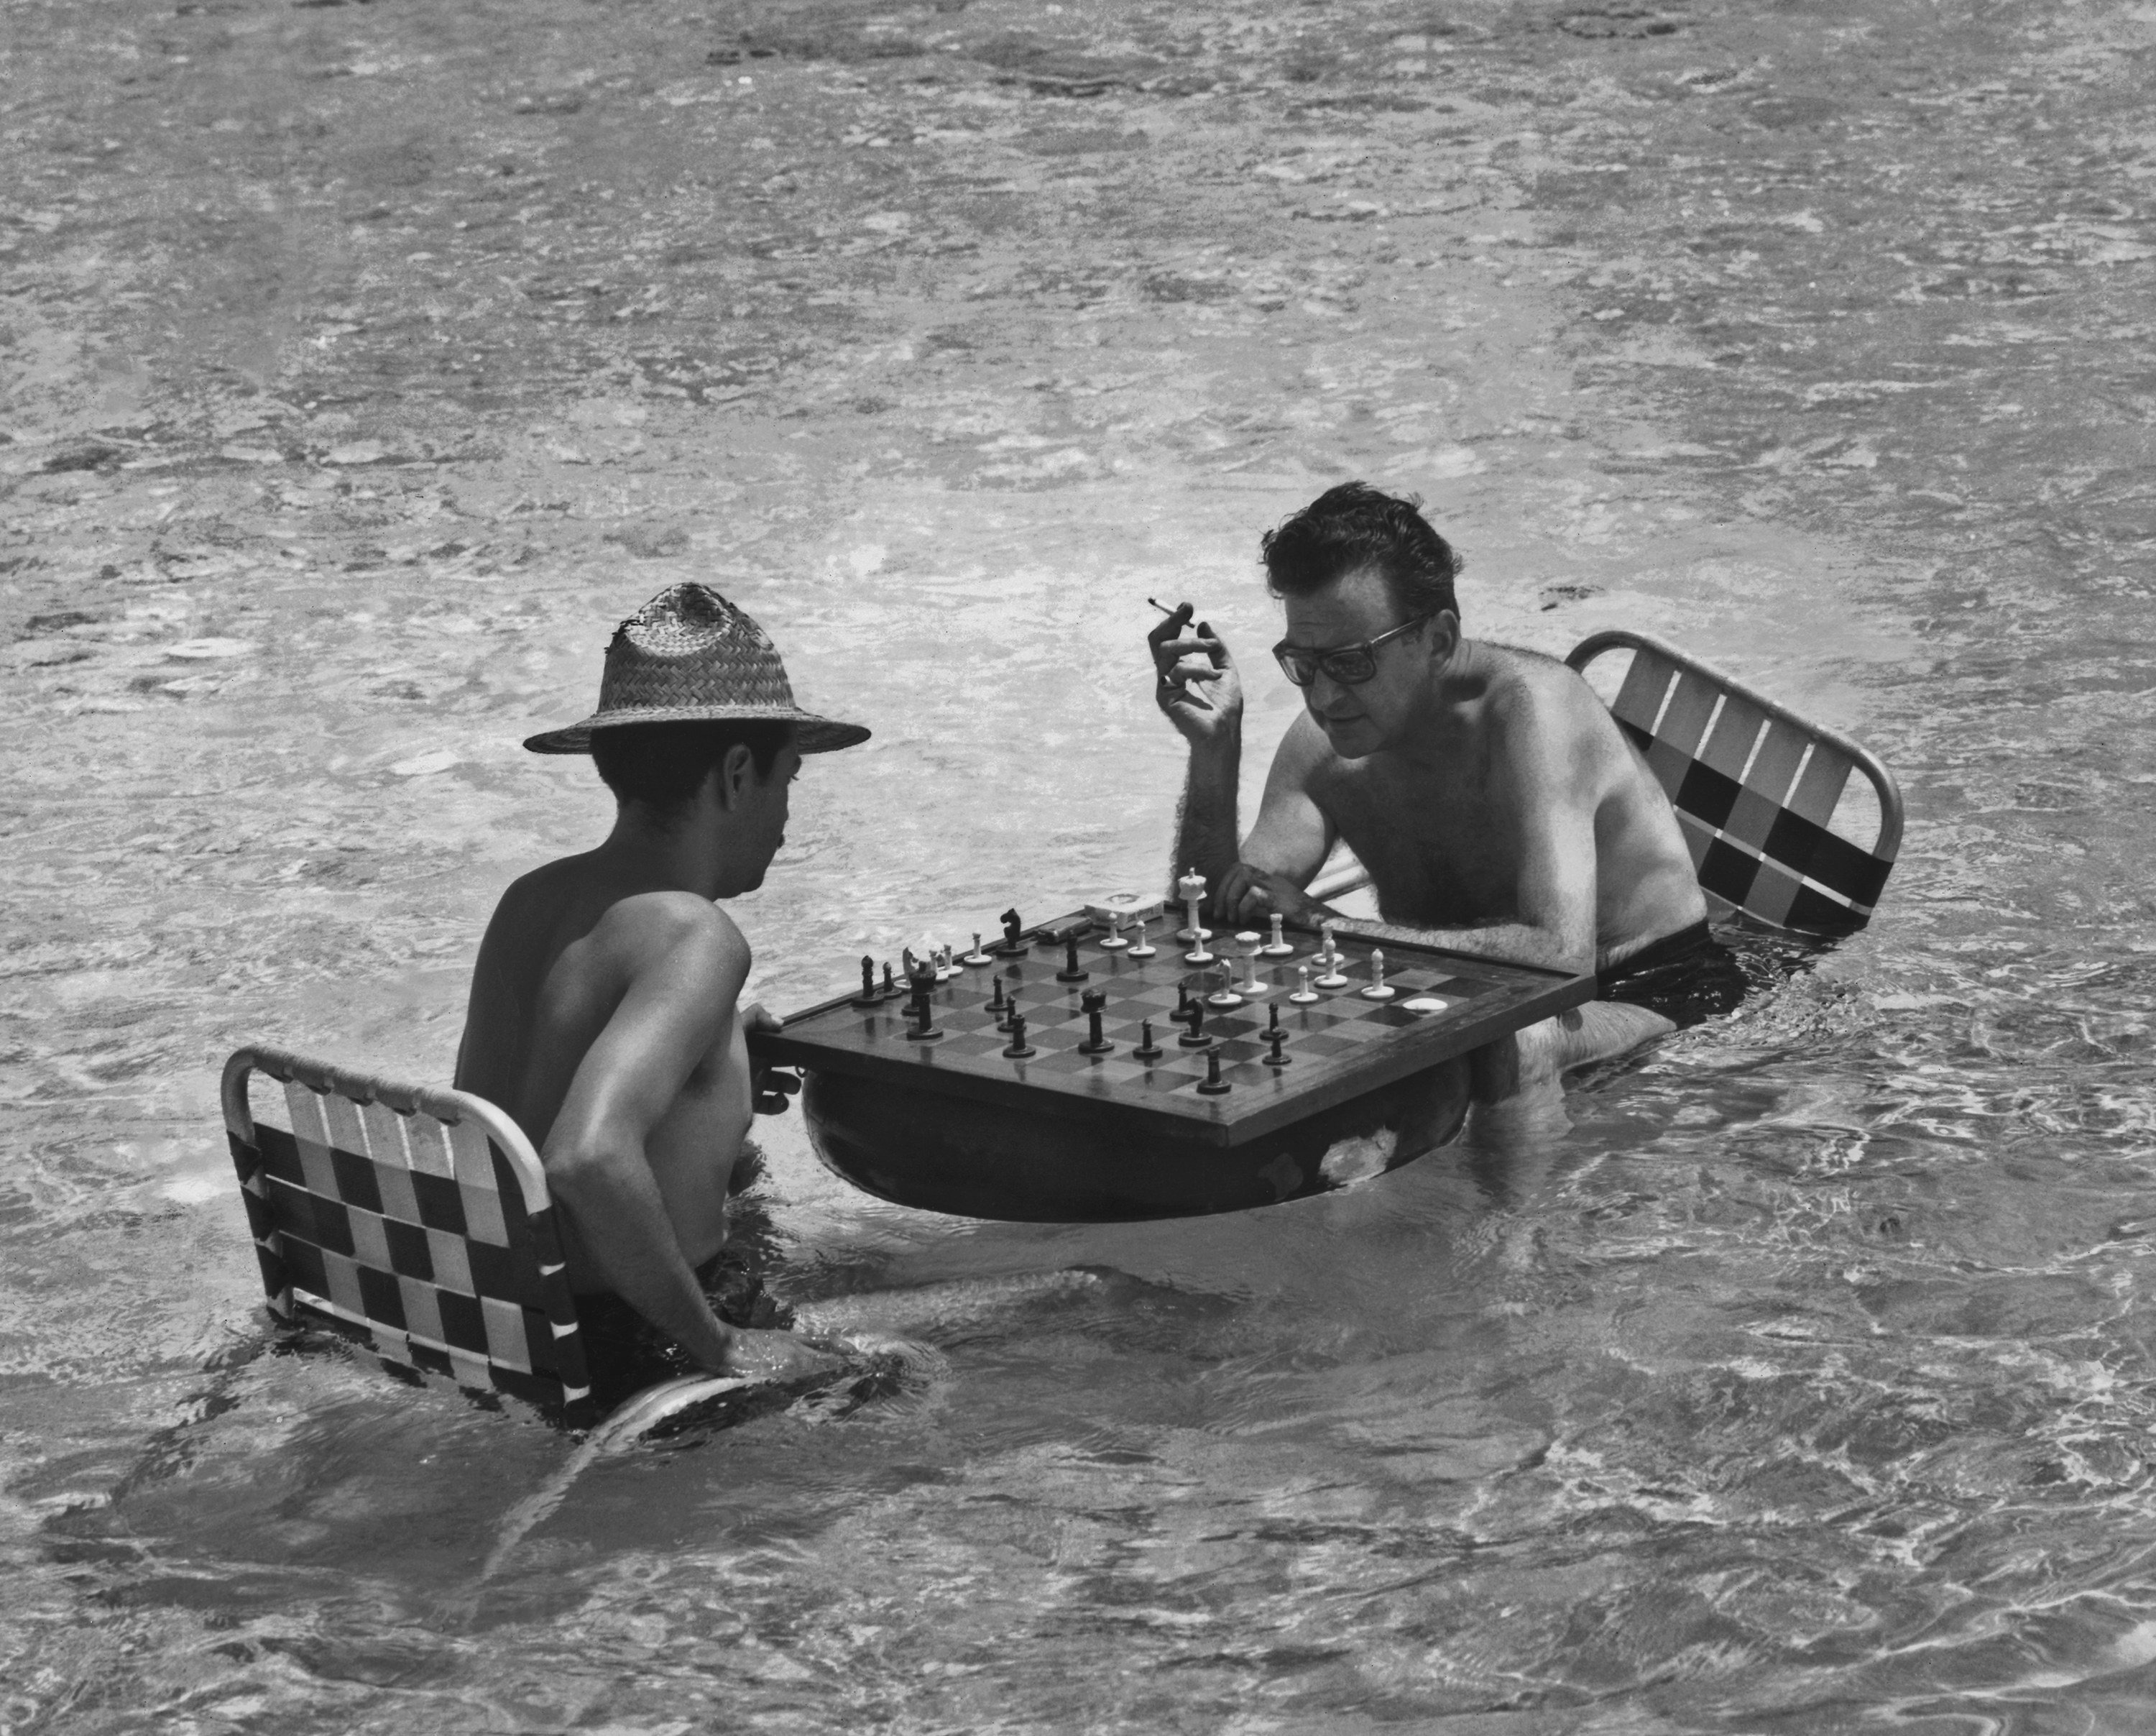 Two men sitting in the water in beach chairs play chess on a board that floats on an inner tube